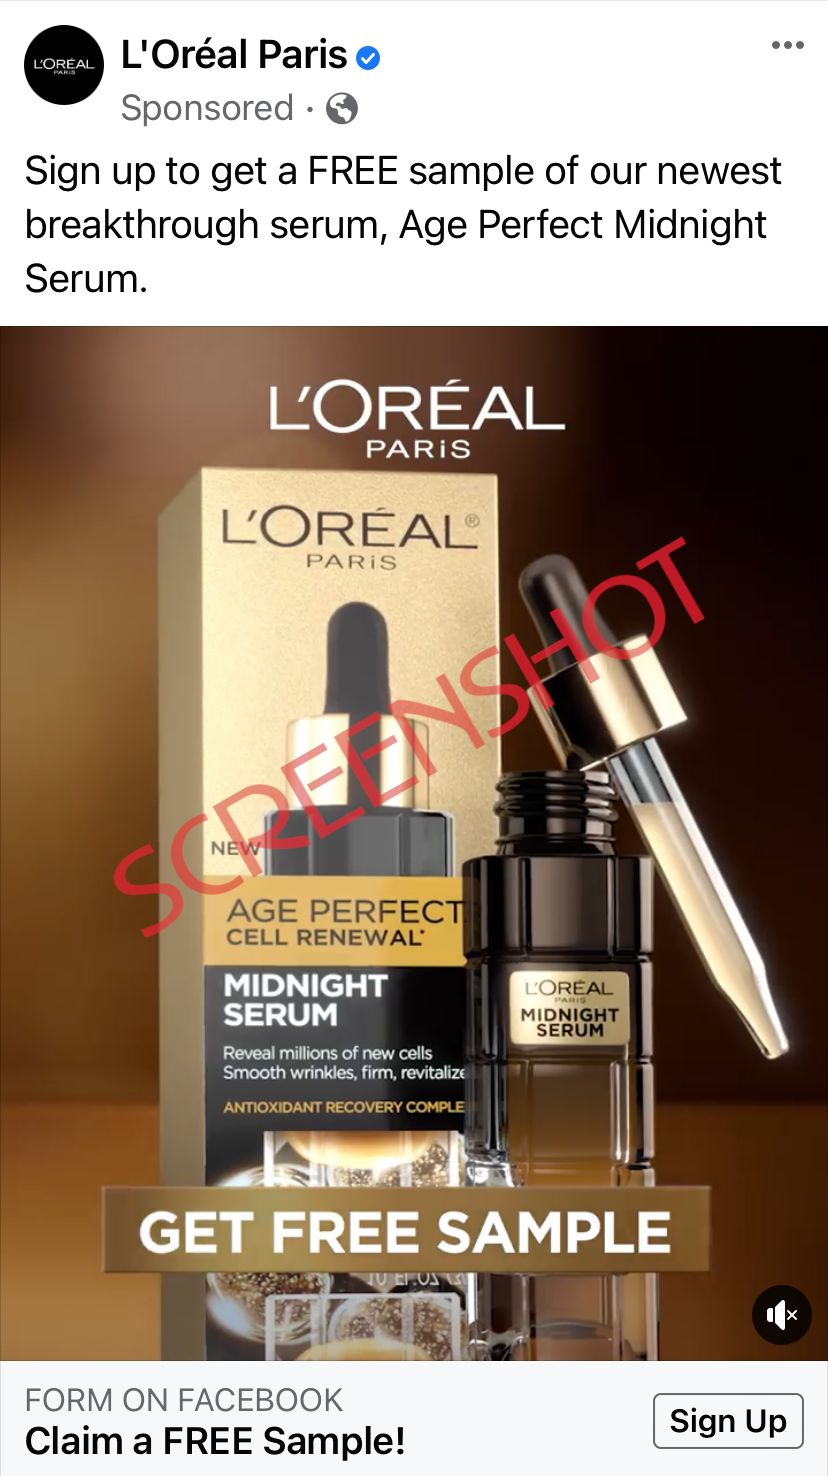 Screenshot of sponsored ad on Facebook for a FREE sample L'Oreal Paris Midnight Serum